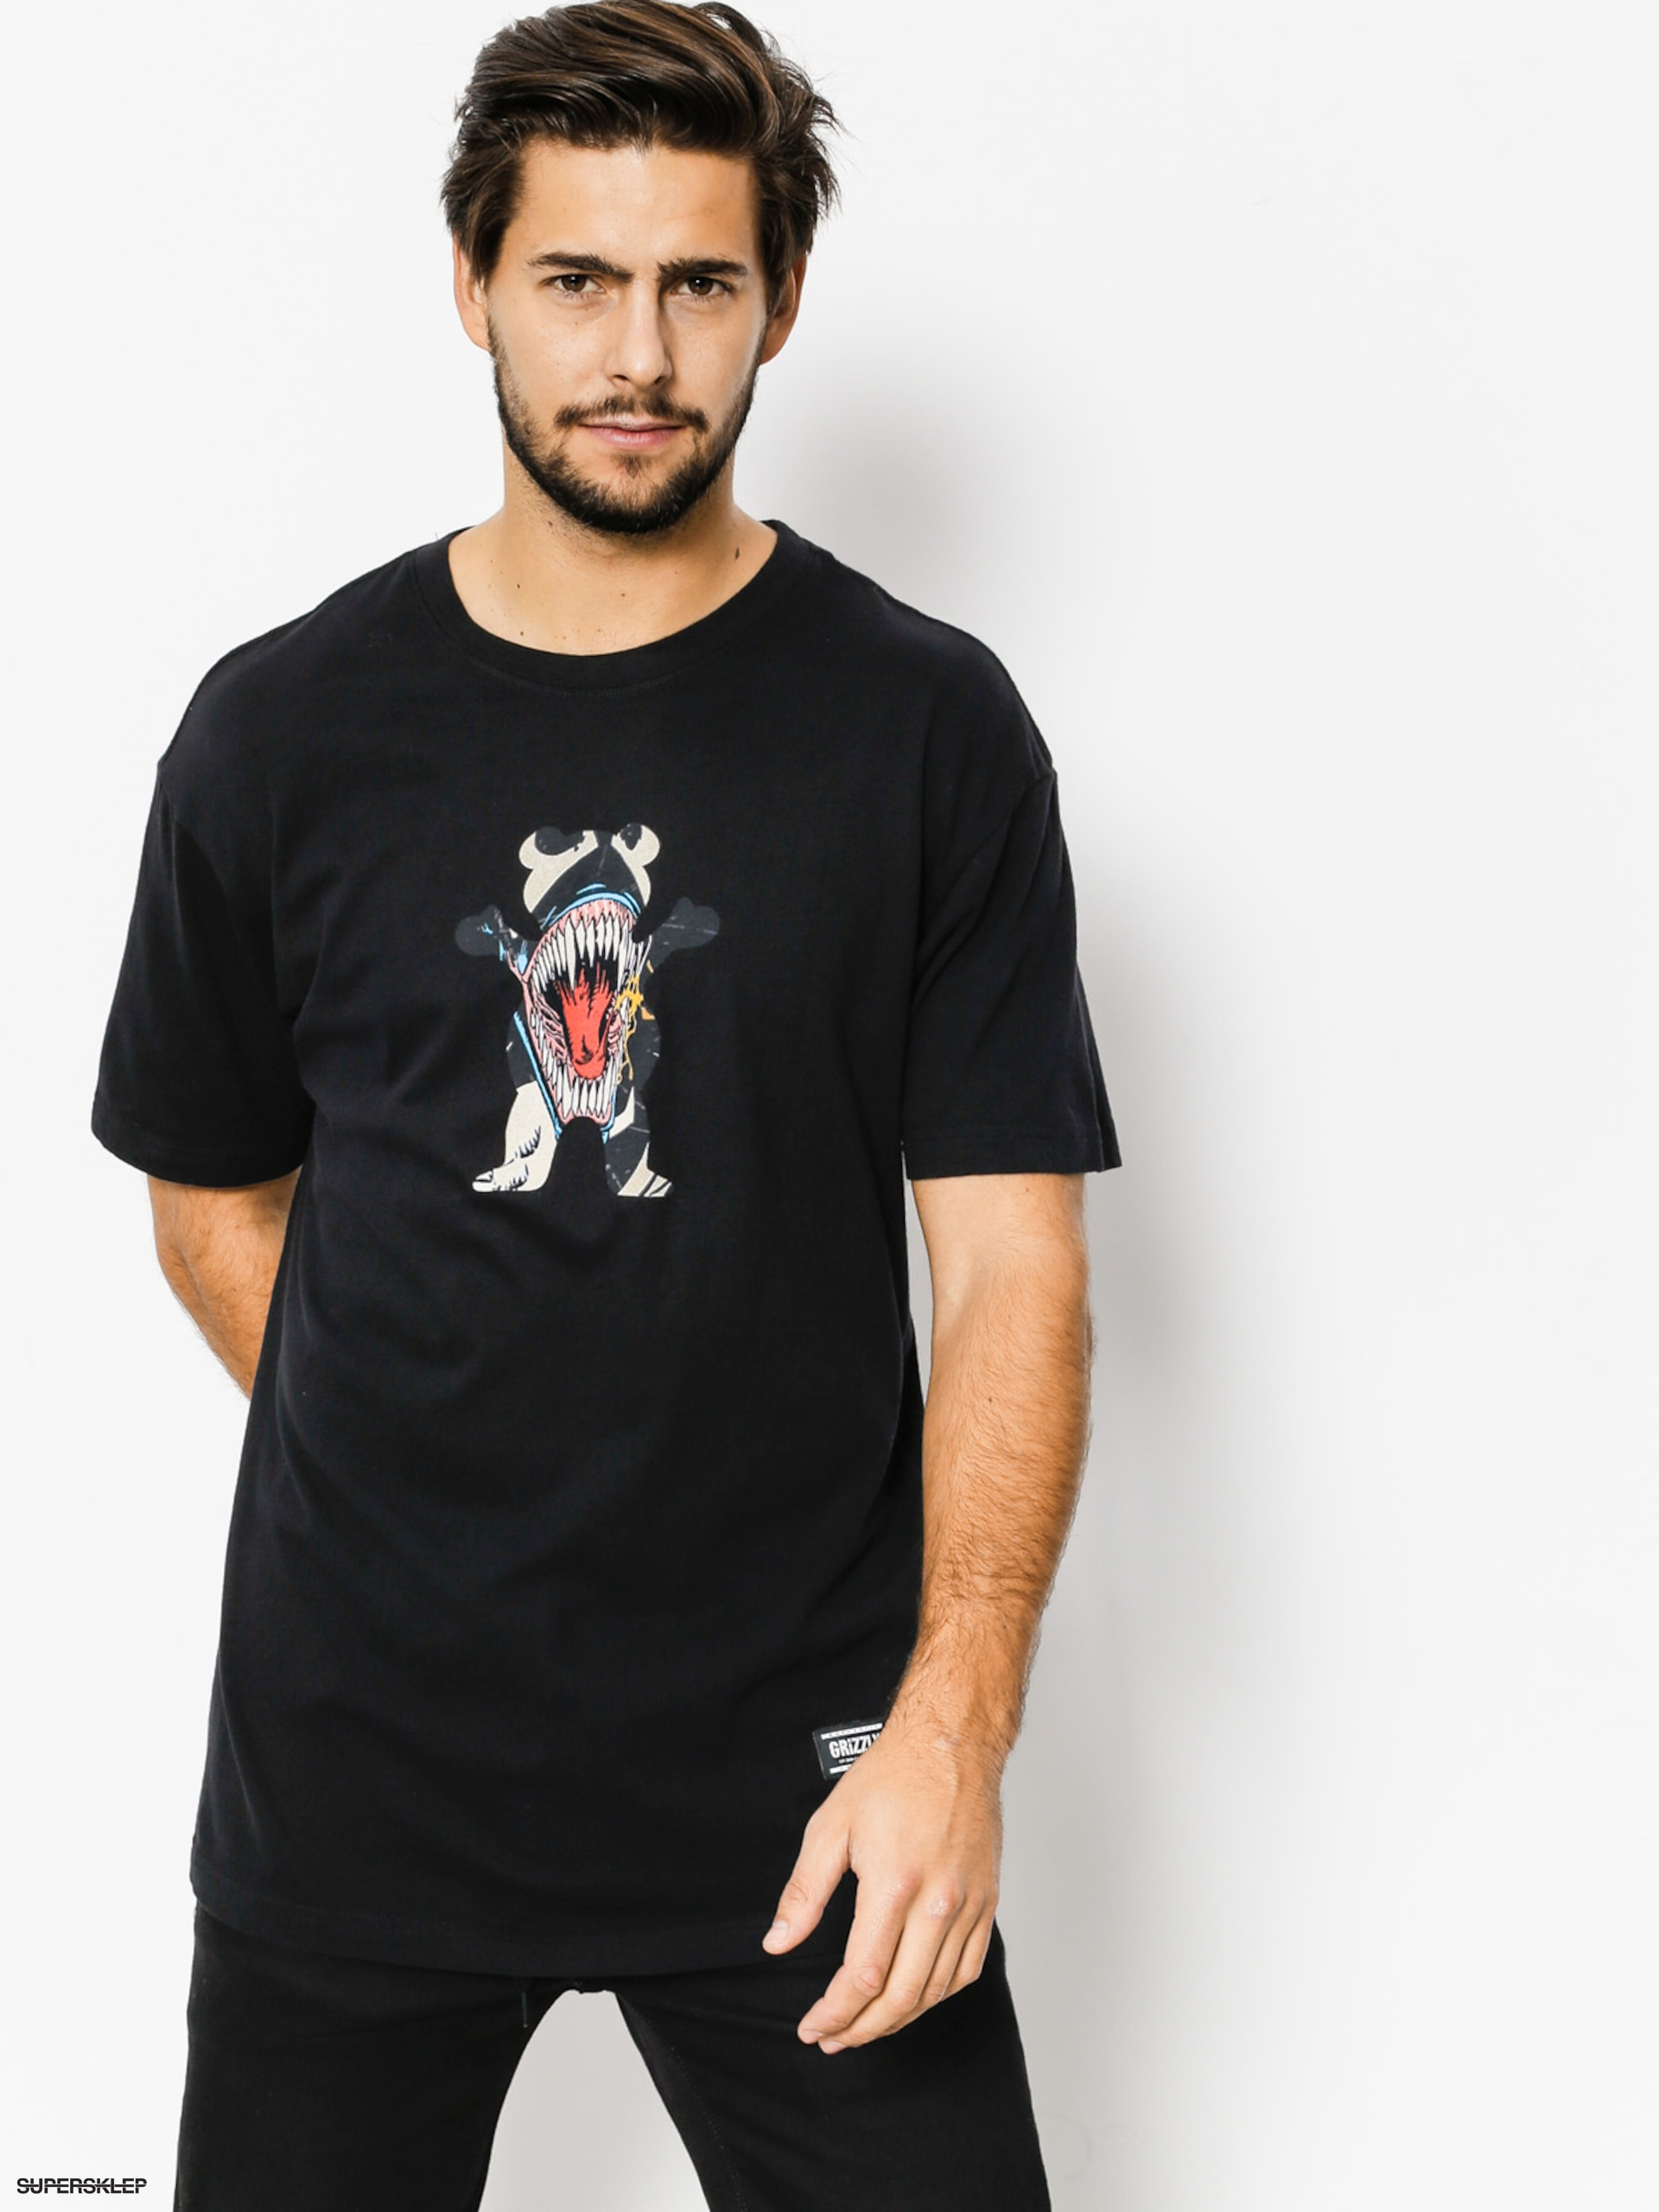 T-shirt Grizzly Griptape Grizzly X Venom Og Bear